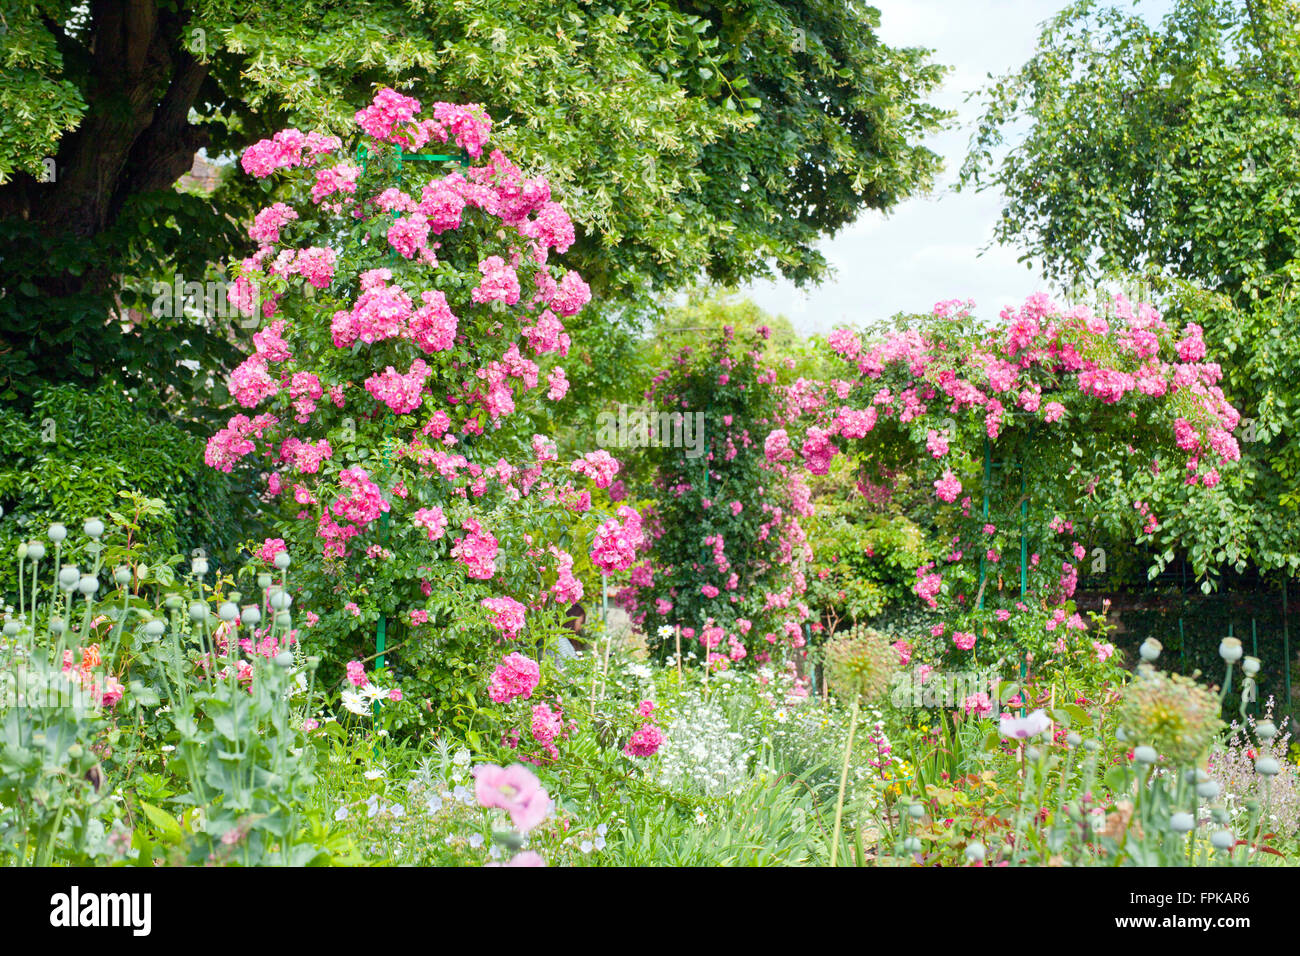 garden of the painter claude monet rose bush roses stock photo royalty free image 99999850. Black Bedroom Furniture Sets. Home Design Ideas